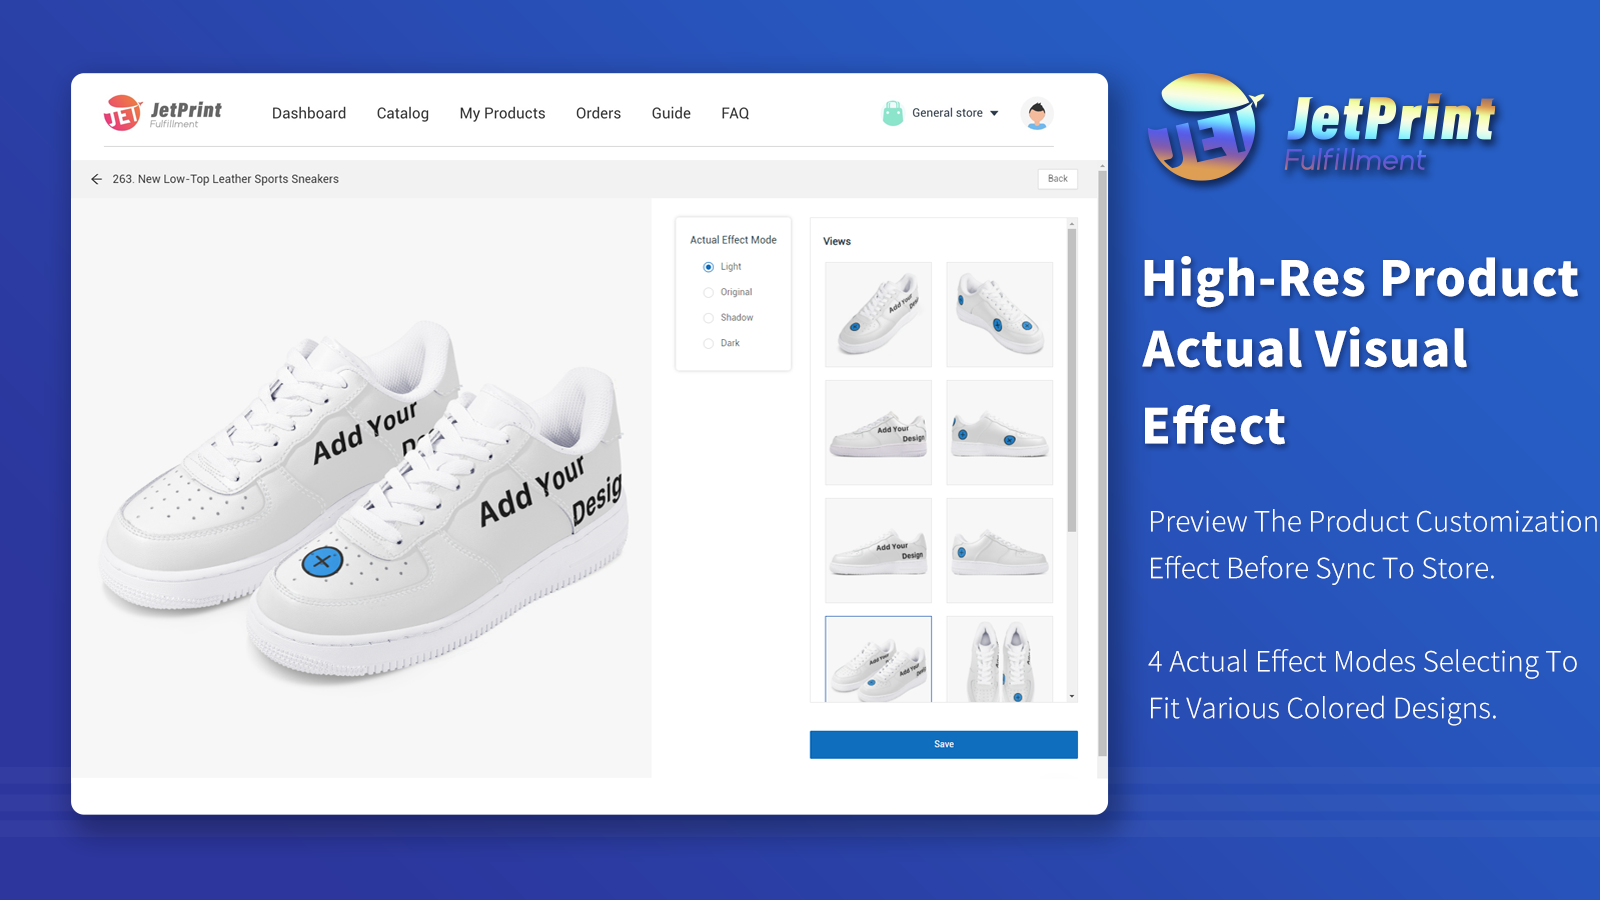 High-res Product Customization Effect Of Print On Demand Shoes